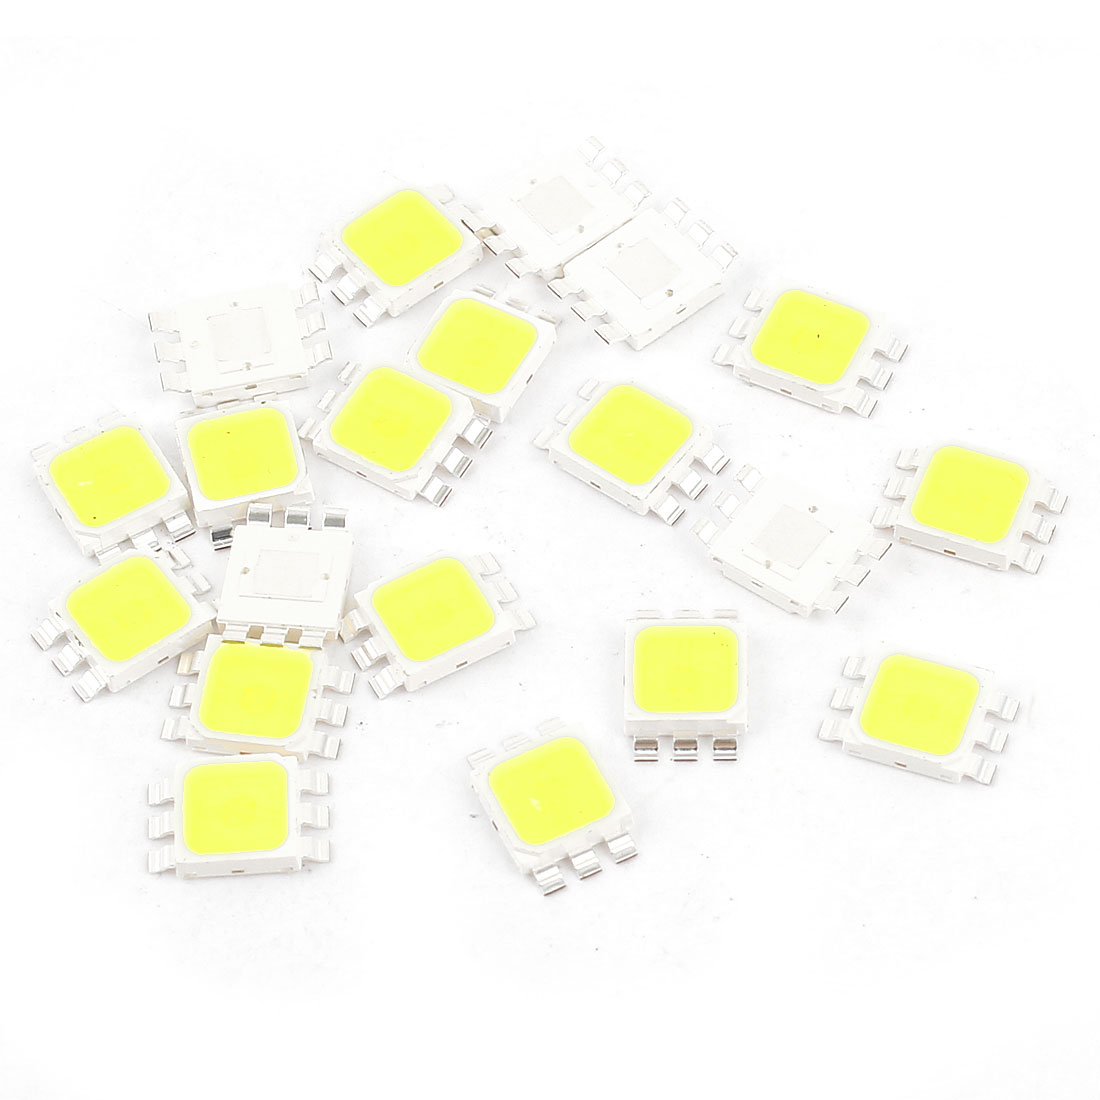 20 Pcs Pure White Light SMD 5050 LED Bead Chip Lamp 3.0-3.6V 350mA 1W 90LM